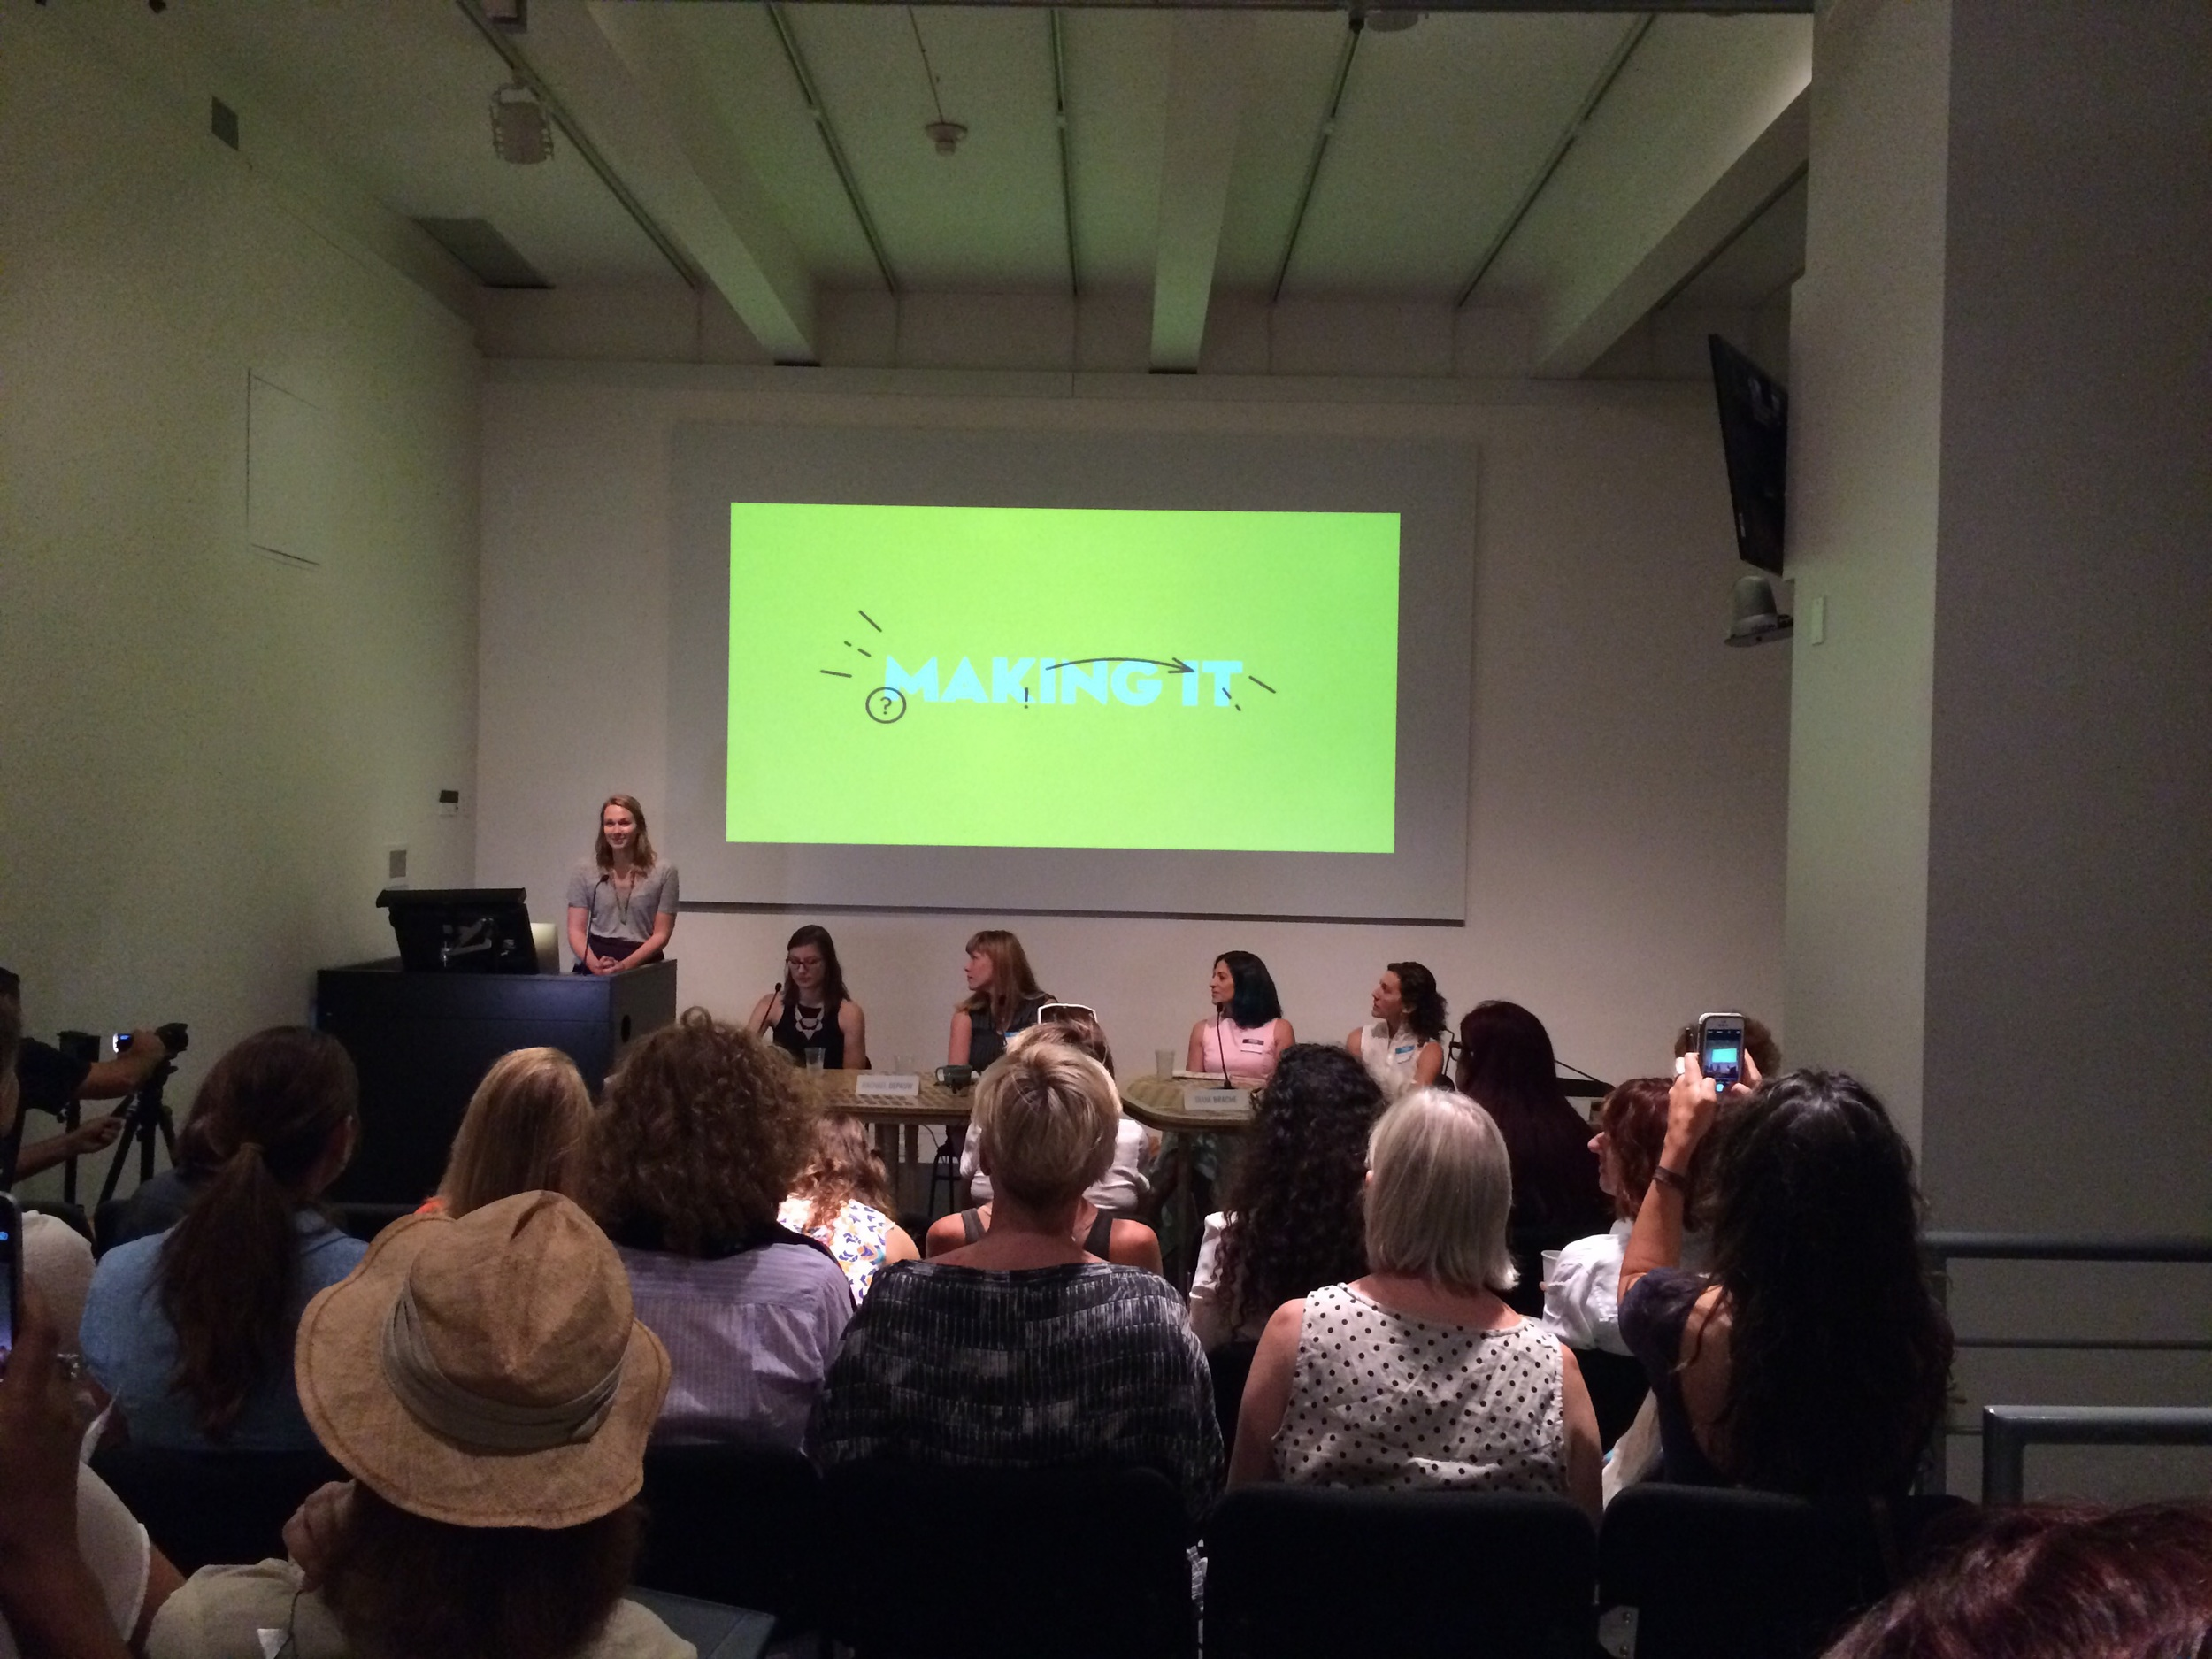 Awesome lecture by Sabrina Smelko of  Design*Sponge  - short, dynamic and to the point.